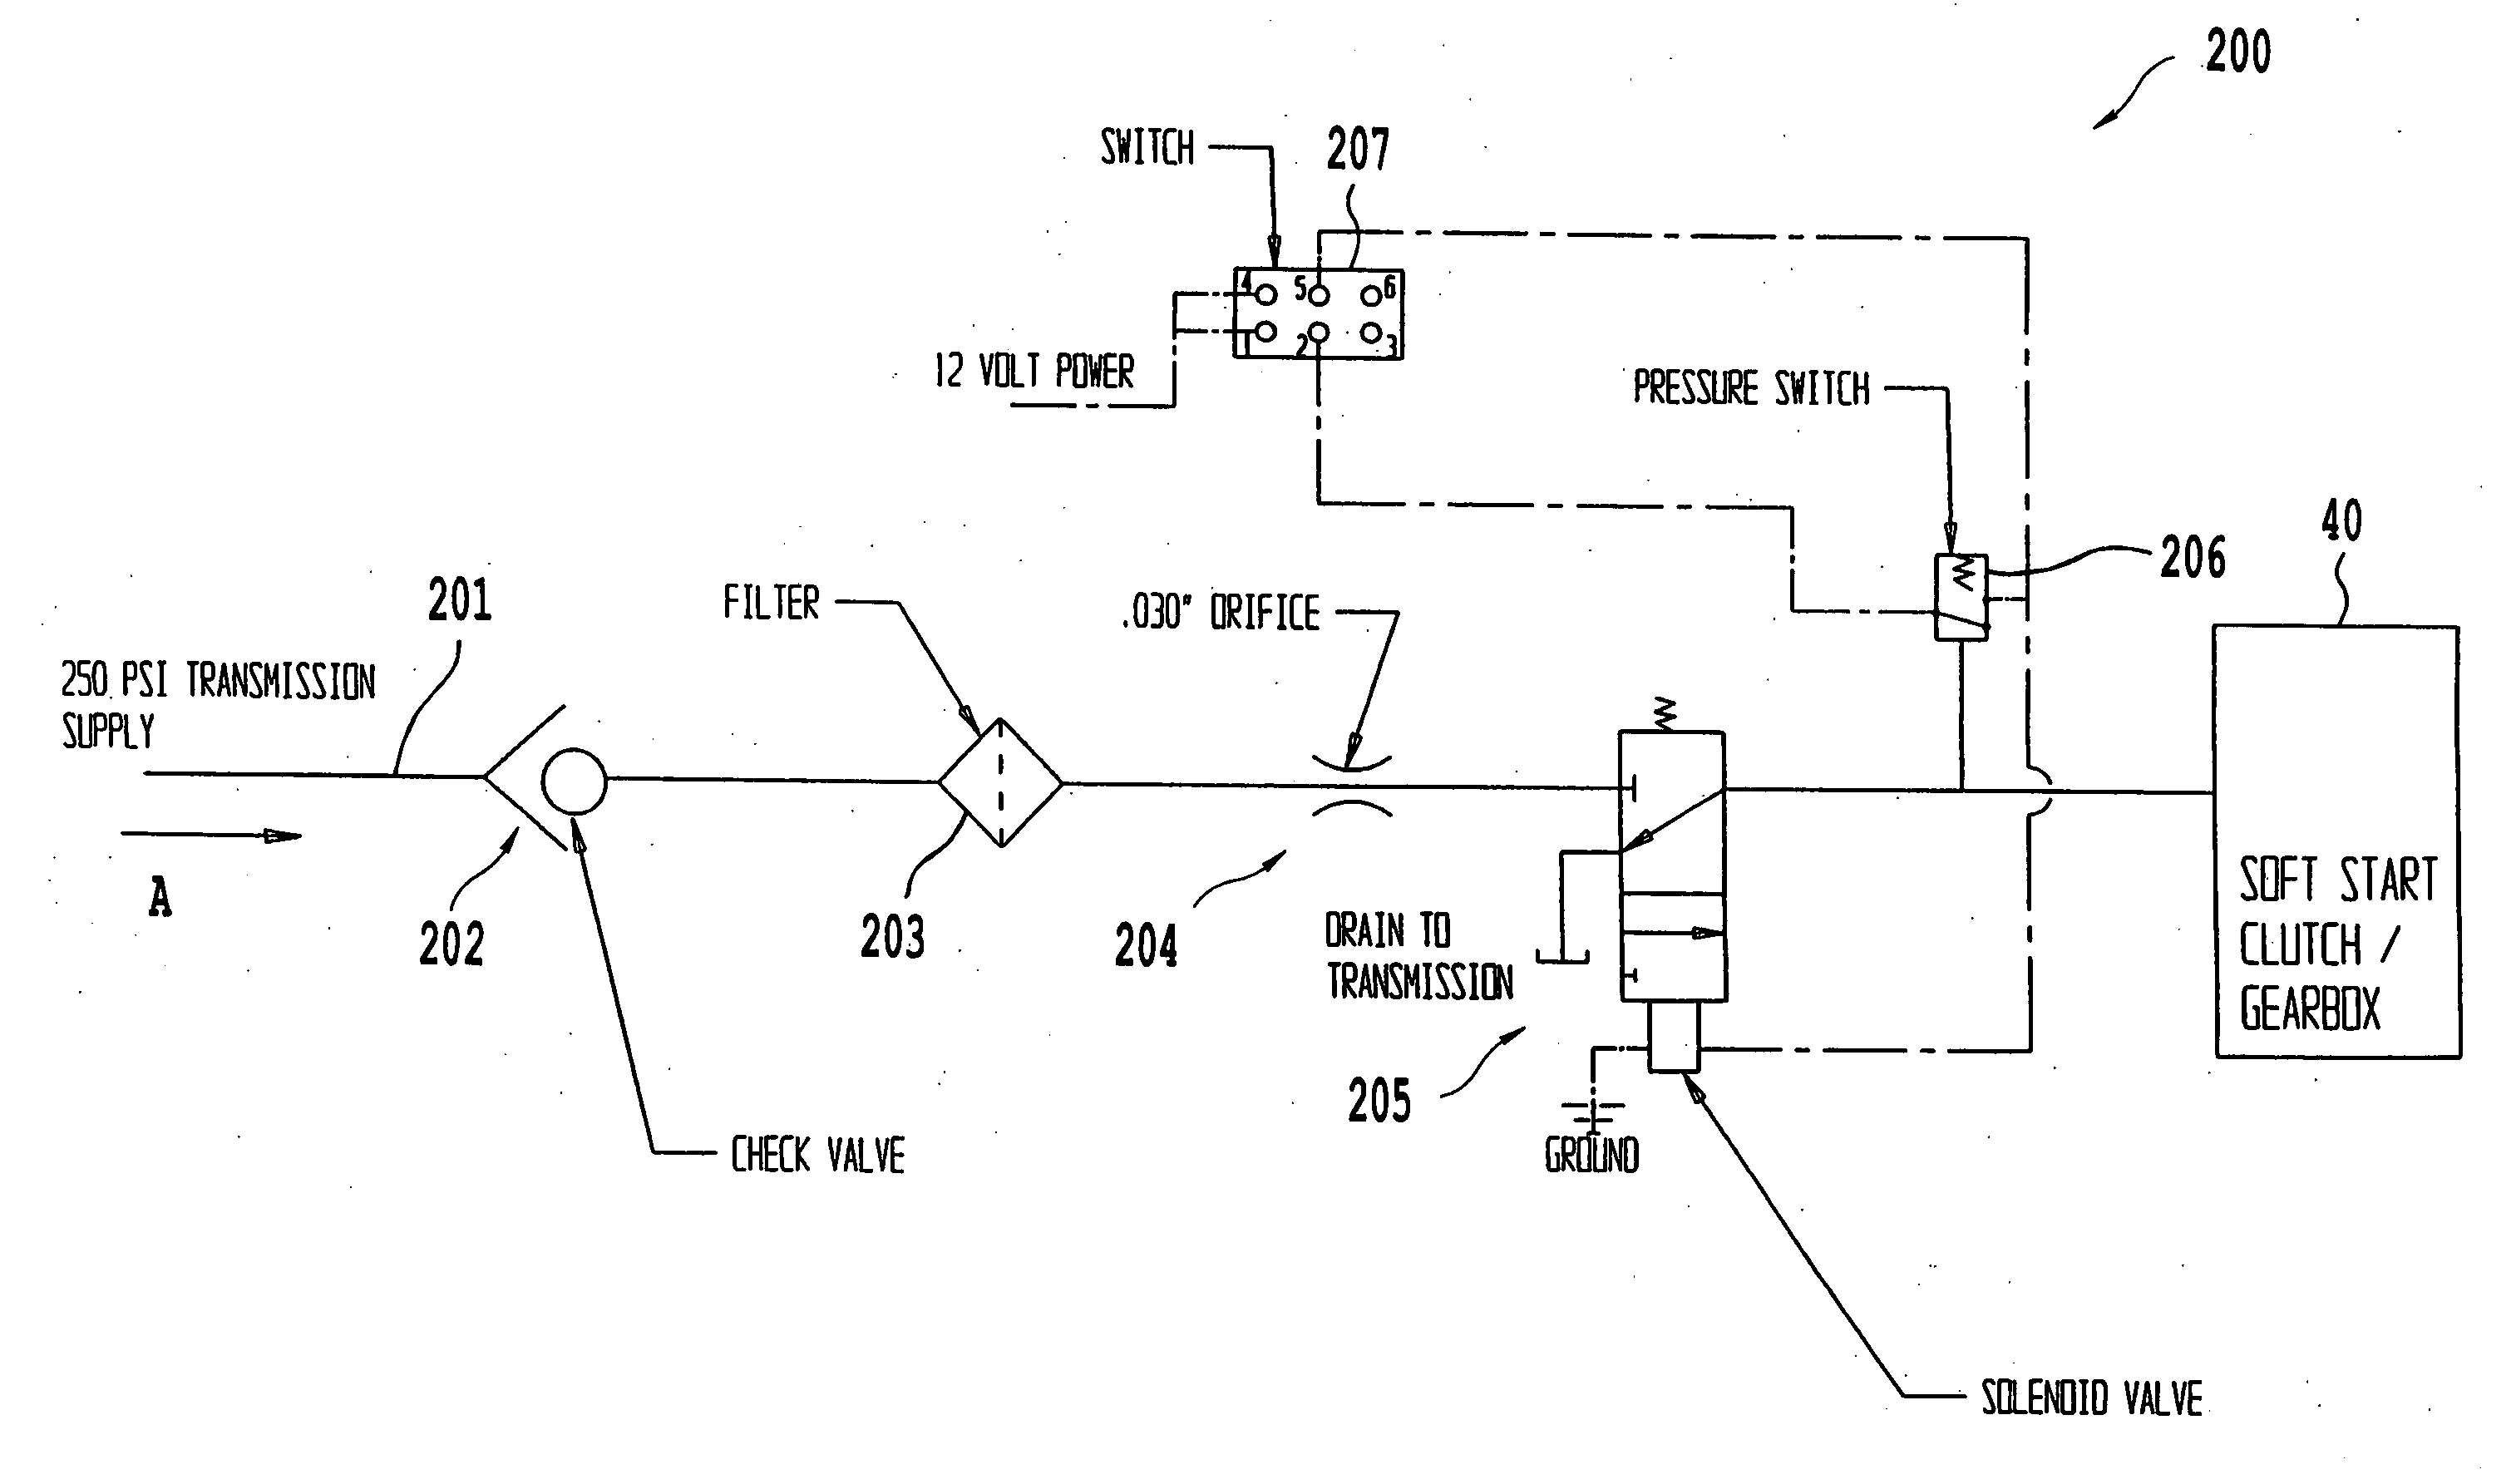 US20060214035A1 20060928 D00000 patent us20060214035 system and method of implementing a soft PTO Switch Wiring Diagram for Massey Furgeson at bakdesigns.co